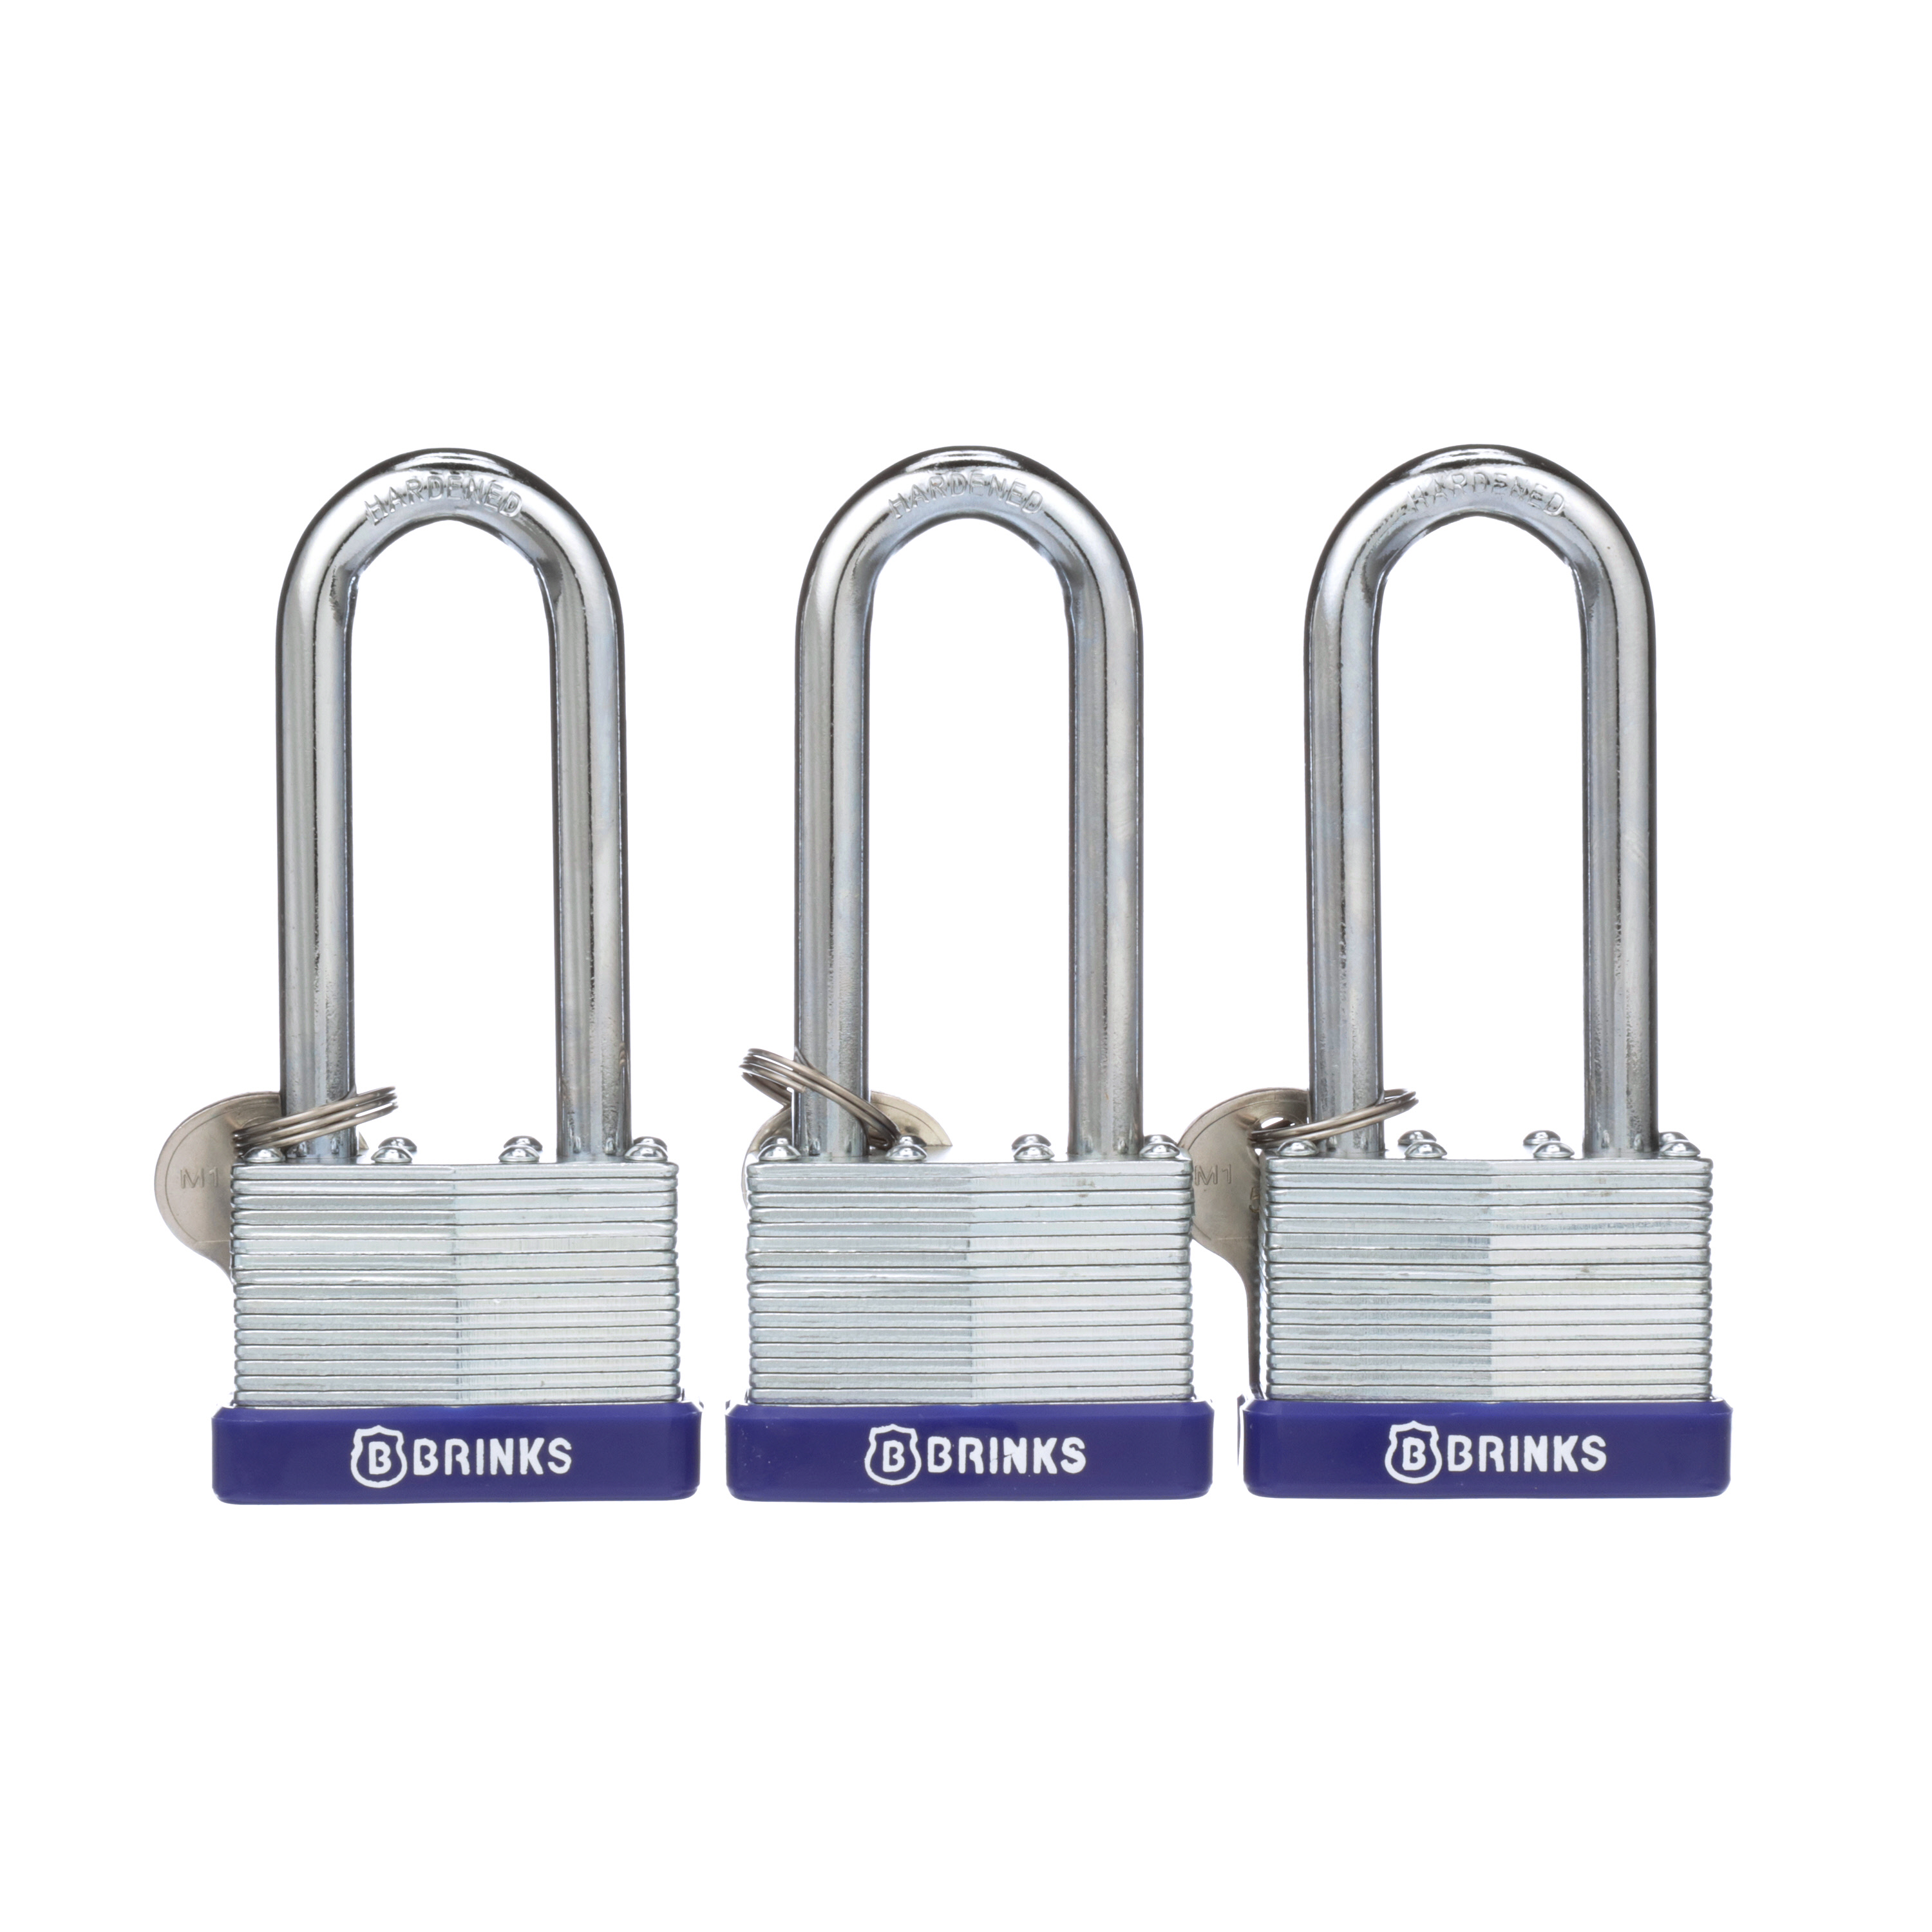 Brink's 44mm Long Shackle Laminated Steel Padlock, 3-Pack by Hampton Products Int'l Corp.